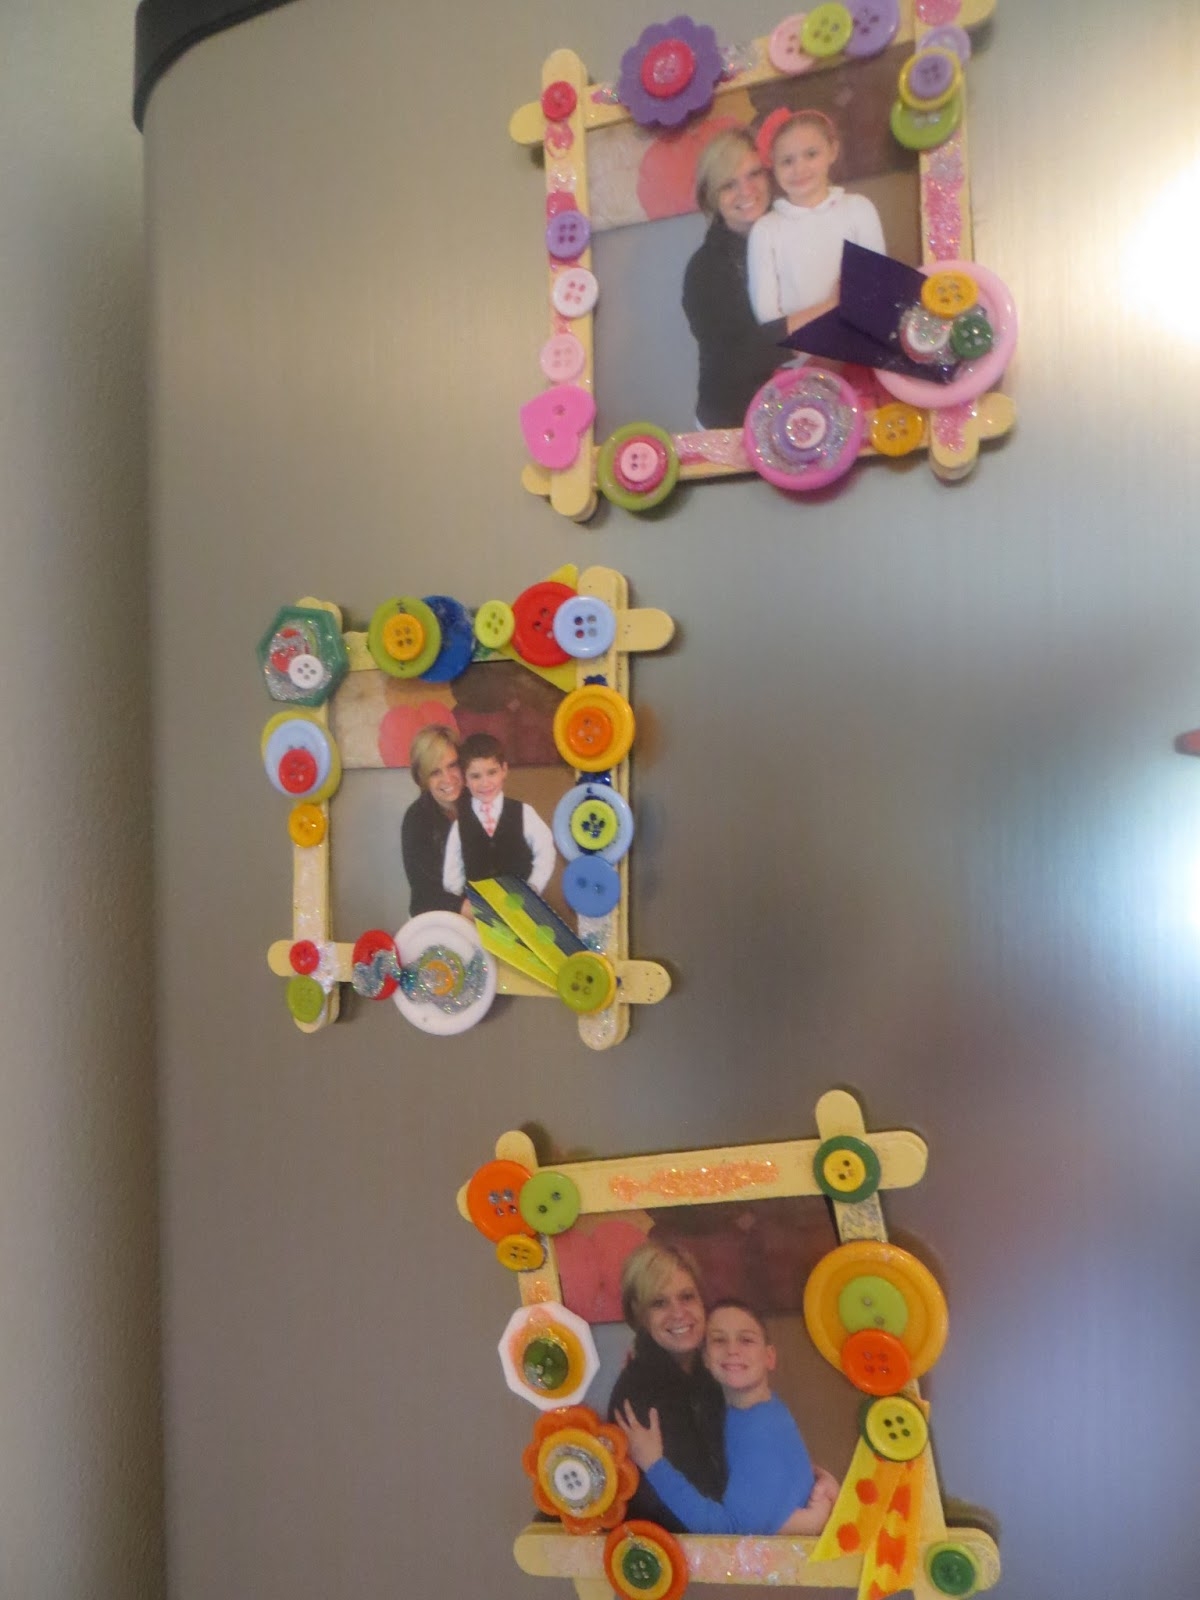 Denises yadda yadda on soap making crafts personal ramblings these refrigerator picture frames are easy inexpensive and colorful supplies include jeuxipadfo Gallery